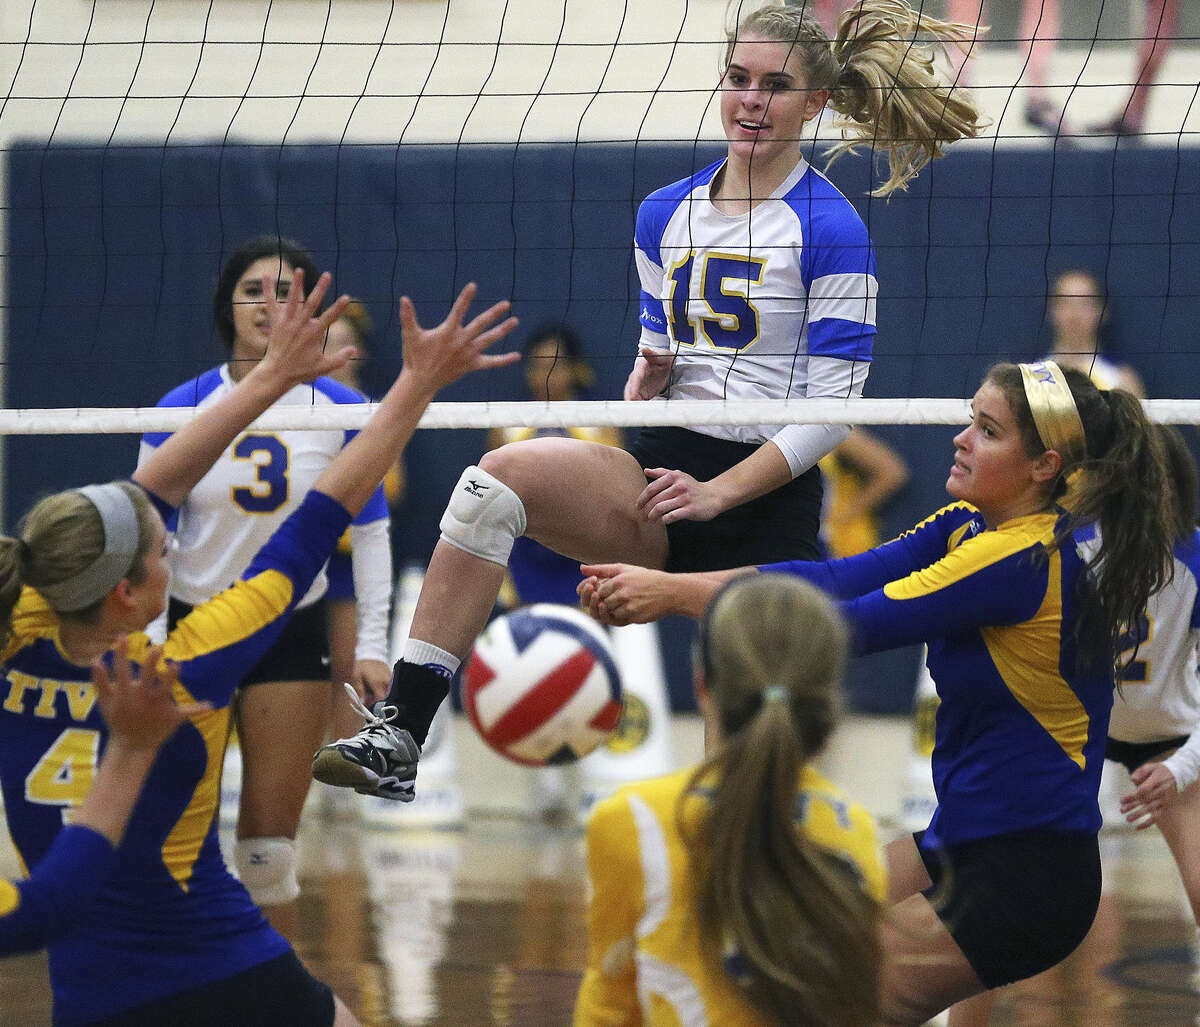 Alamo Heights' McKay Kyle (15) enjoys the scramble she created on the other side of the net with her spike during the Mules' three-set victory over District 27-5A rival Kerrville Tivy.